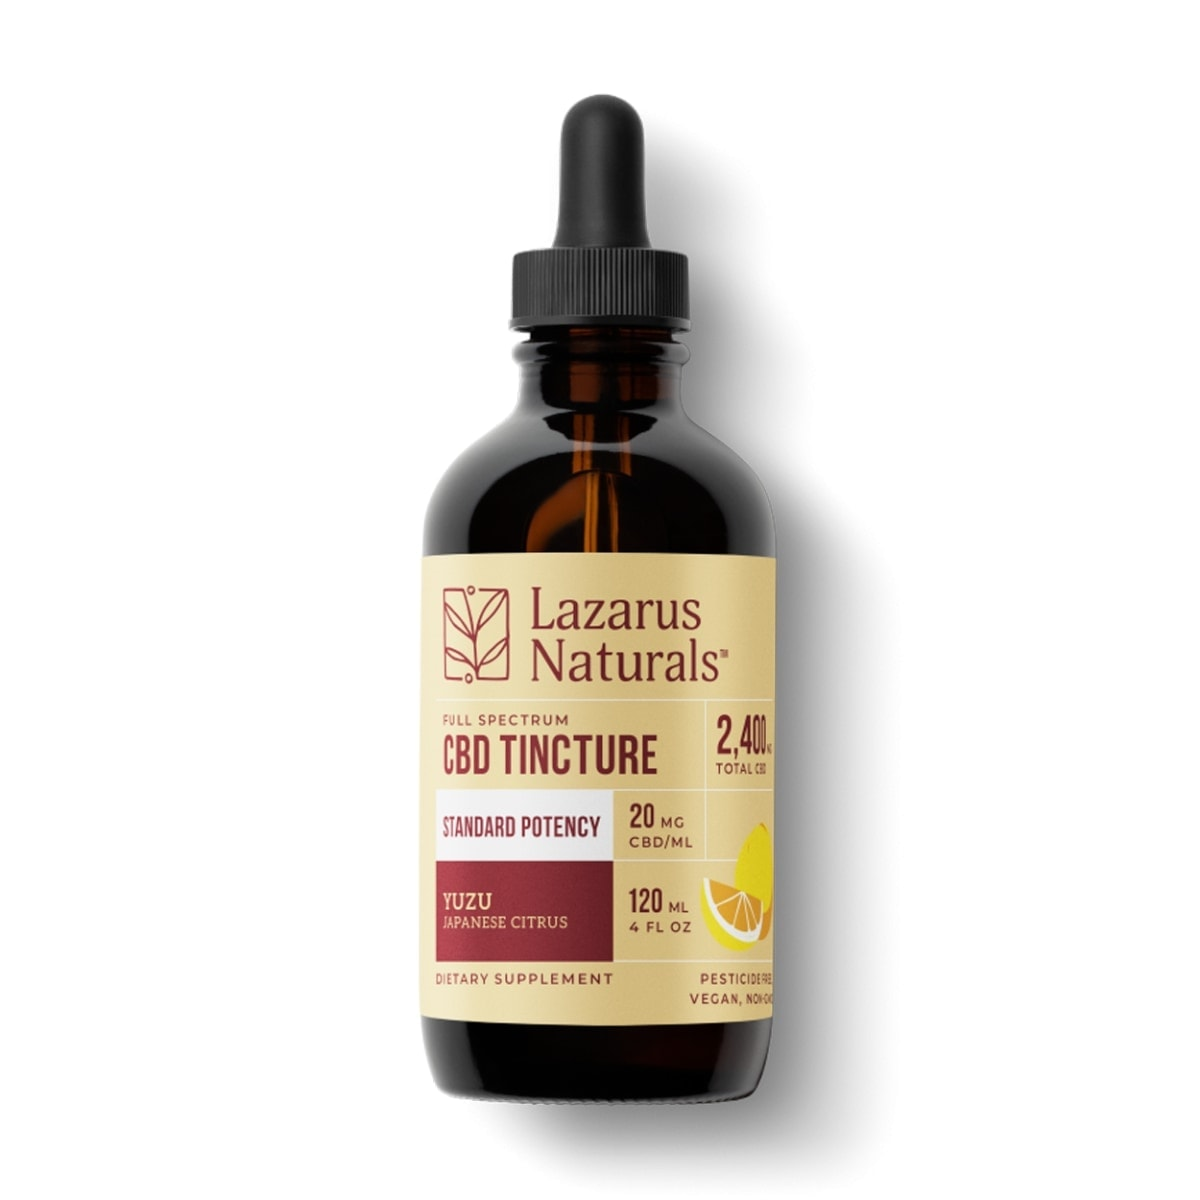 Lazarus Naturals, Yuzu Standard Potency CBD Tincture, Full Spectrum, Citrus, 4oz, 2400mg of CBD